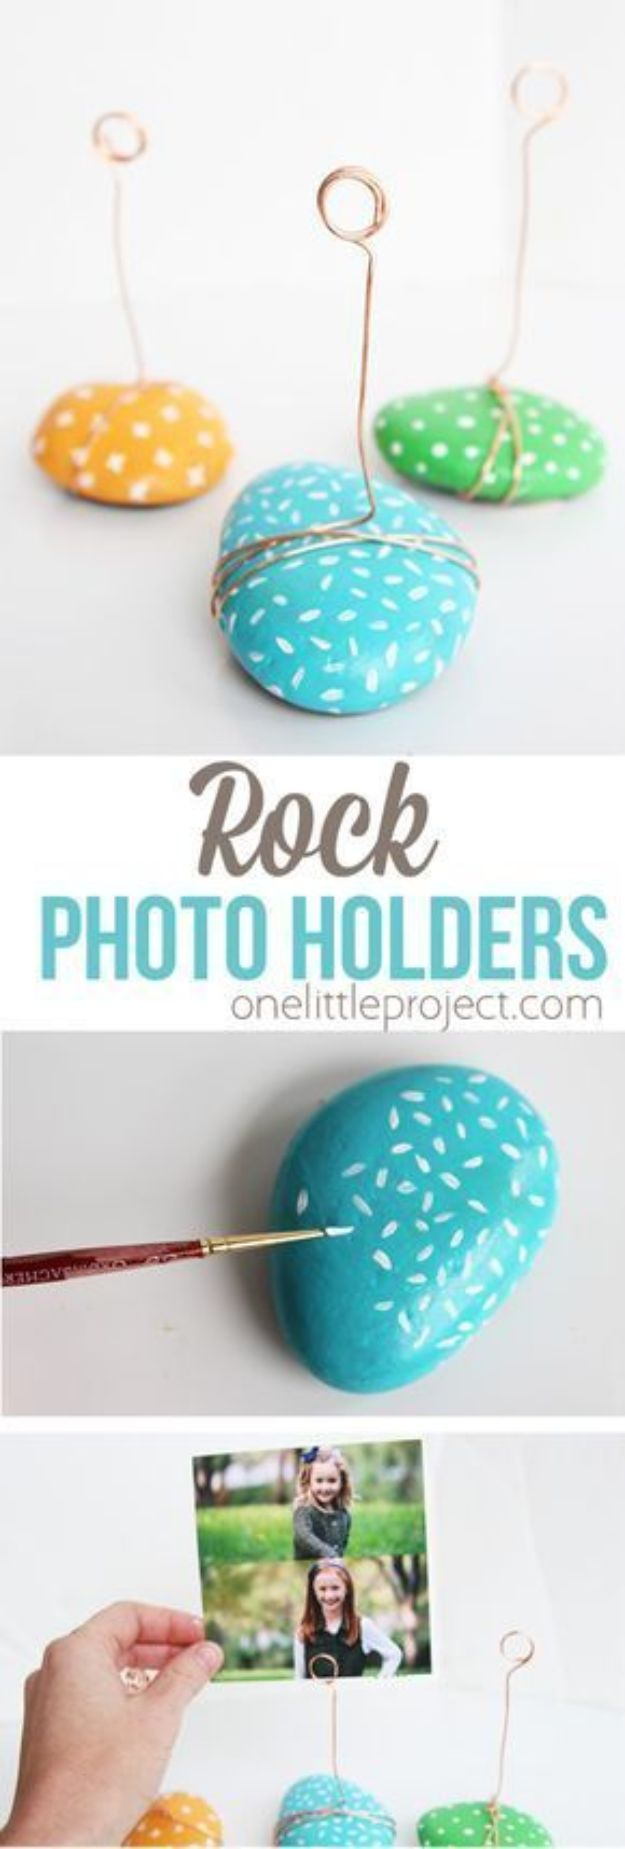 Crafts To Make and Sell - Rock Photo Holders - 75 MORE Easy DIY Ideas for Cheap Things To Sell on Etsy, Online and for Craft Fairs. Make Money with These Homemade Crafts for Teens, Kids, Christmas, Summer, Mother's Day Gifts. http://diyjoy.com/crafts-to-make-and-sell-ideas